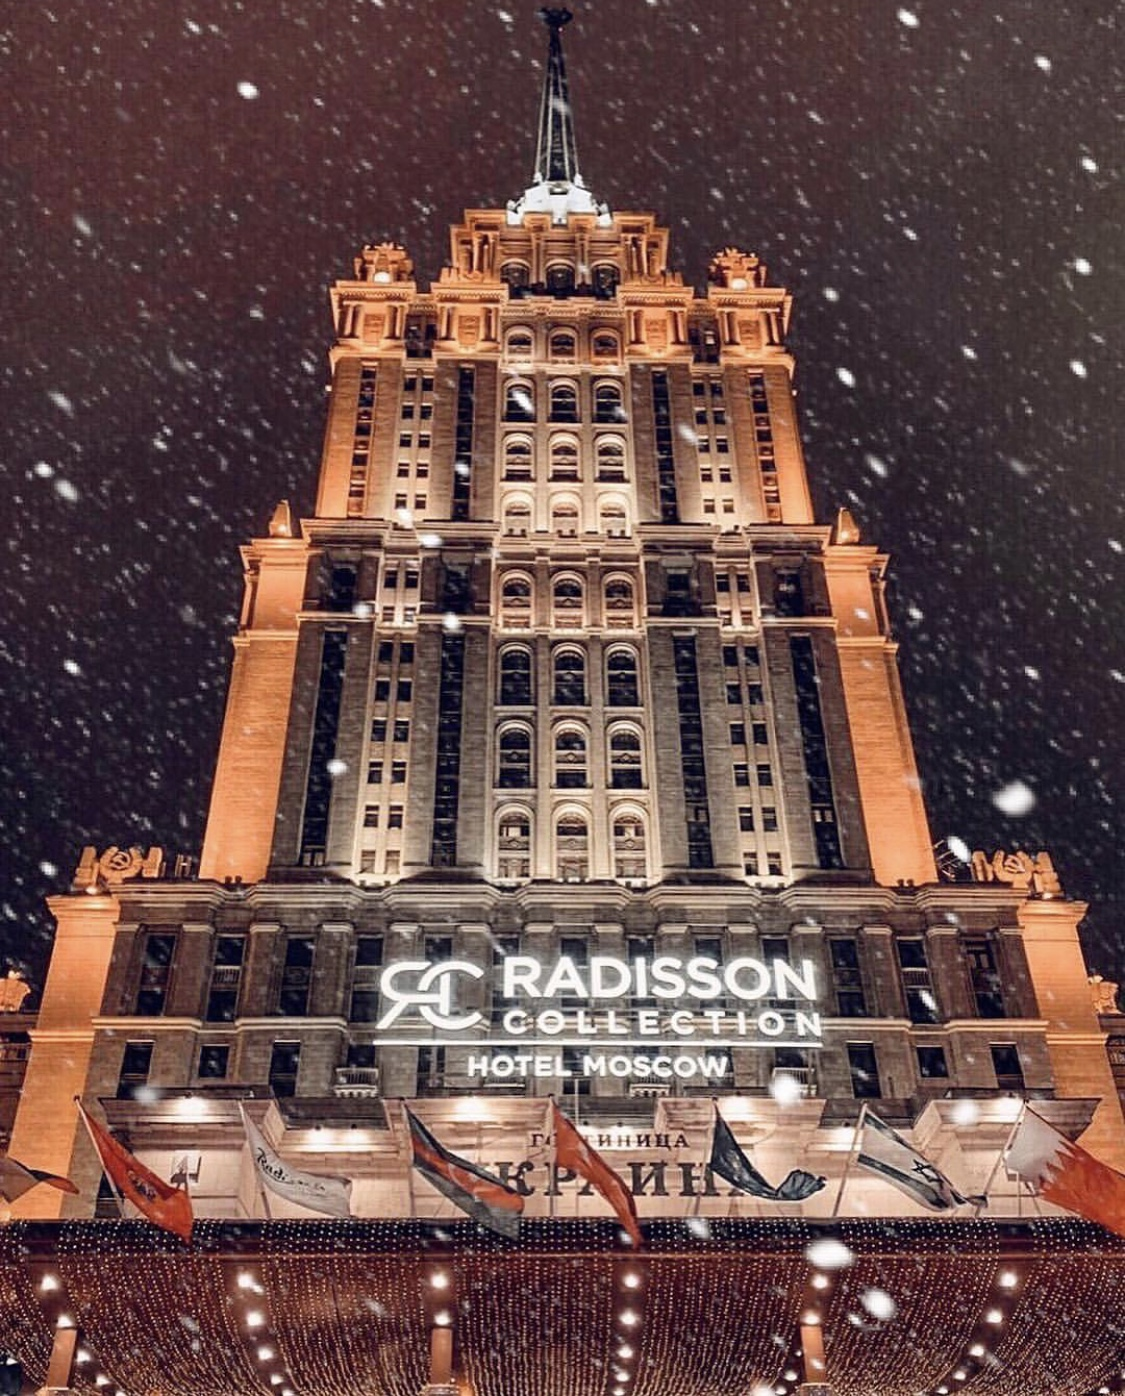 Radisson Collection Hotel, Moscow стал победителем премии World Travel Awards